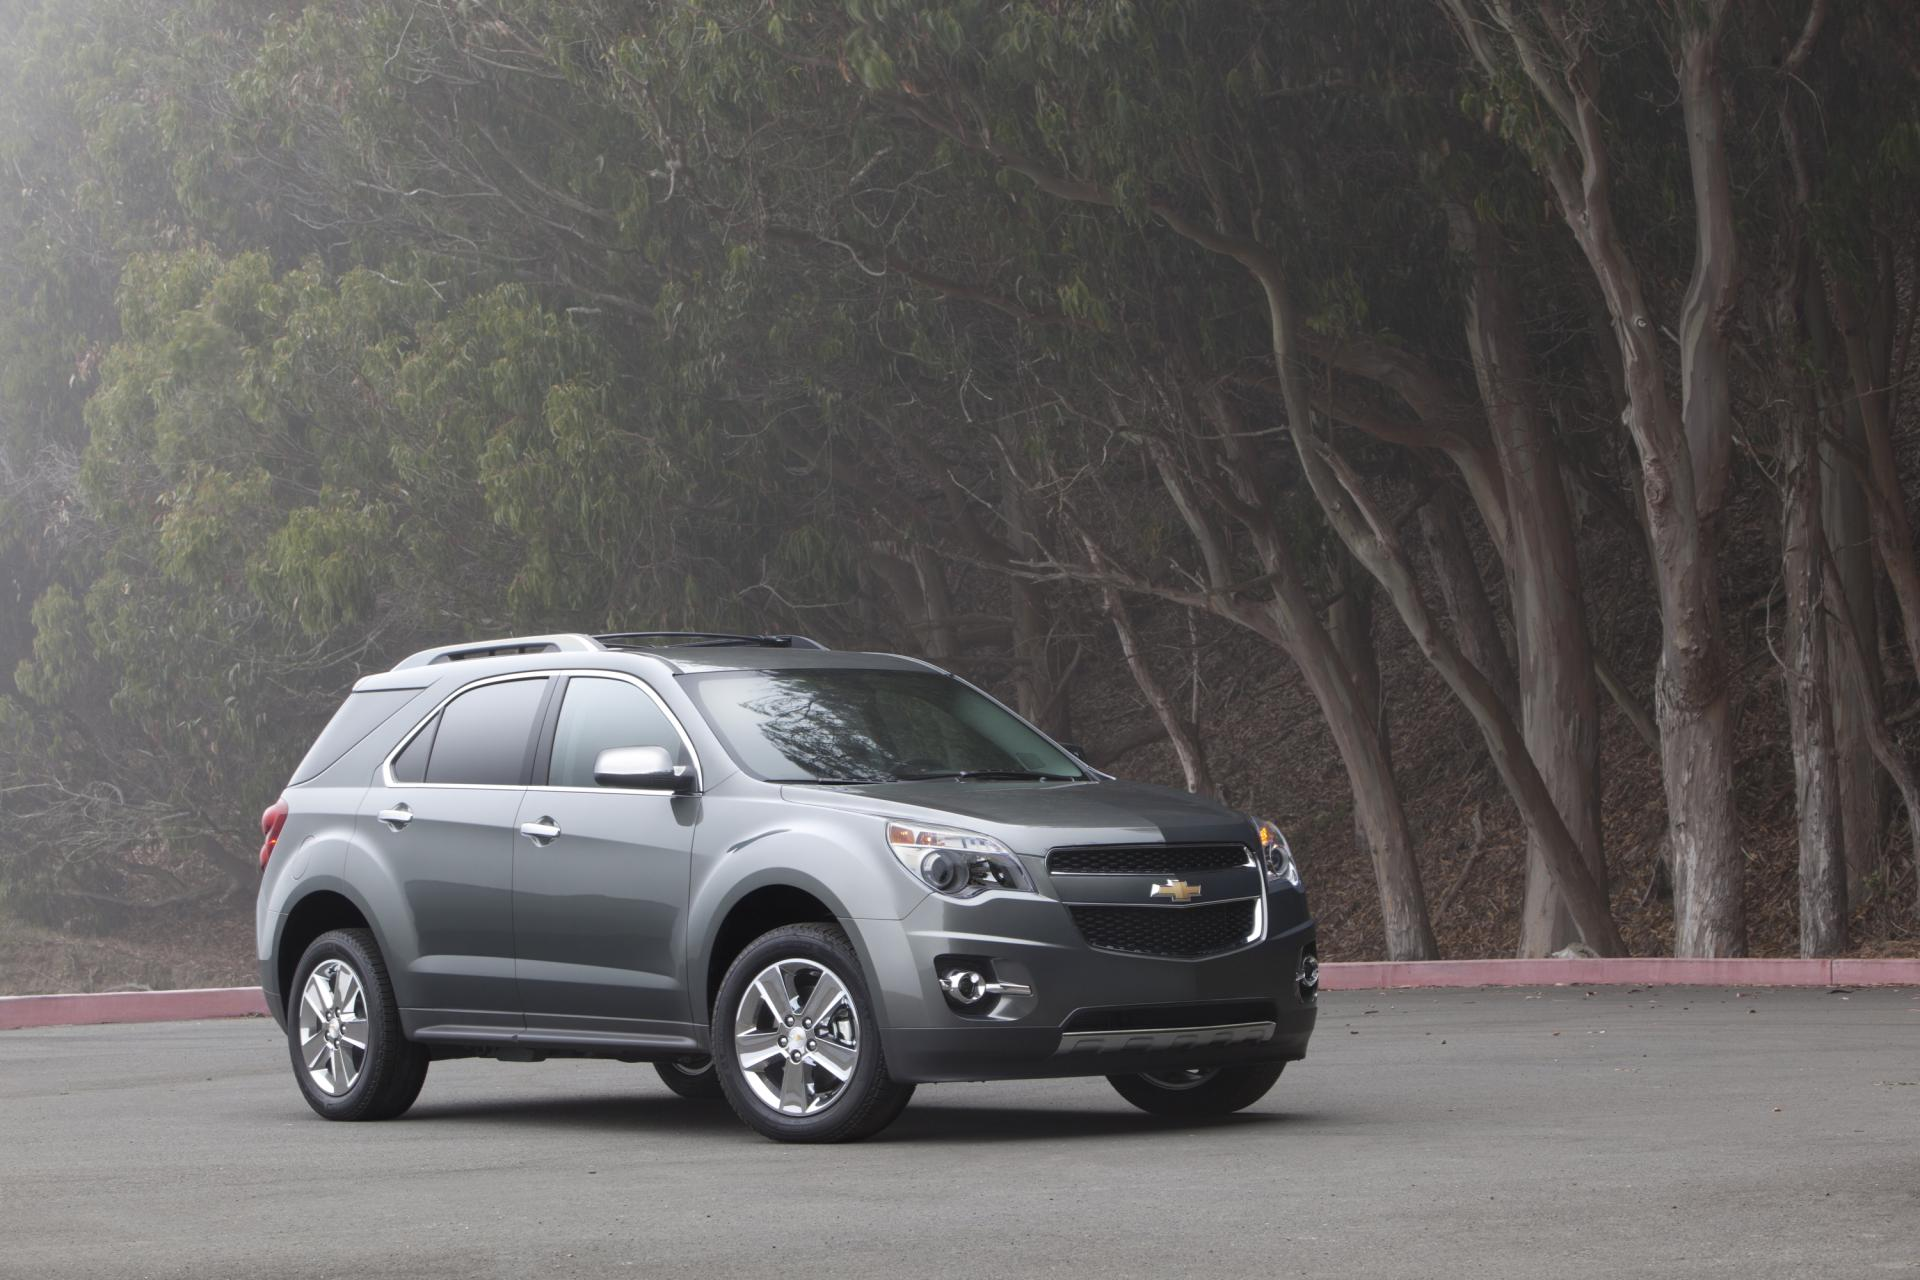 2015 chevrolet equinox news and information. Black Bedroom Furniture Sets. Home Design Ideas